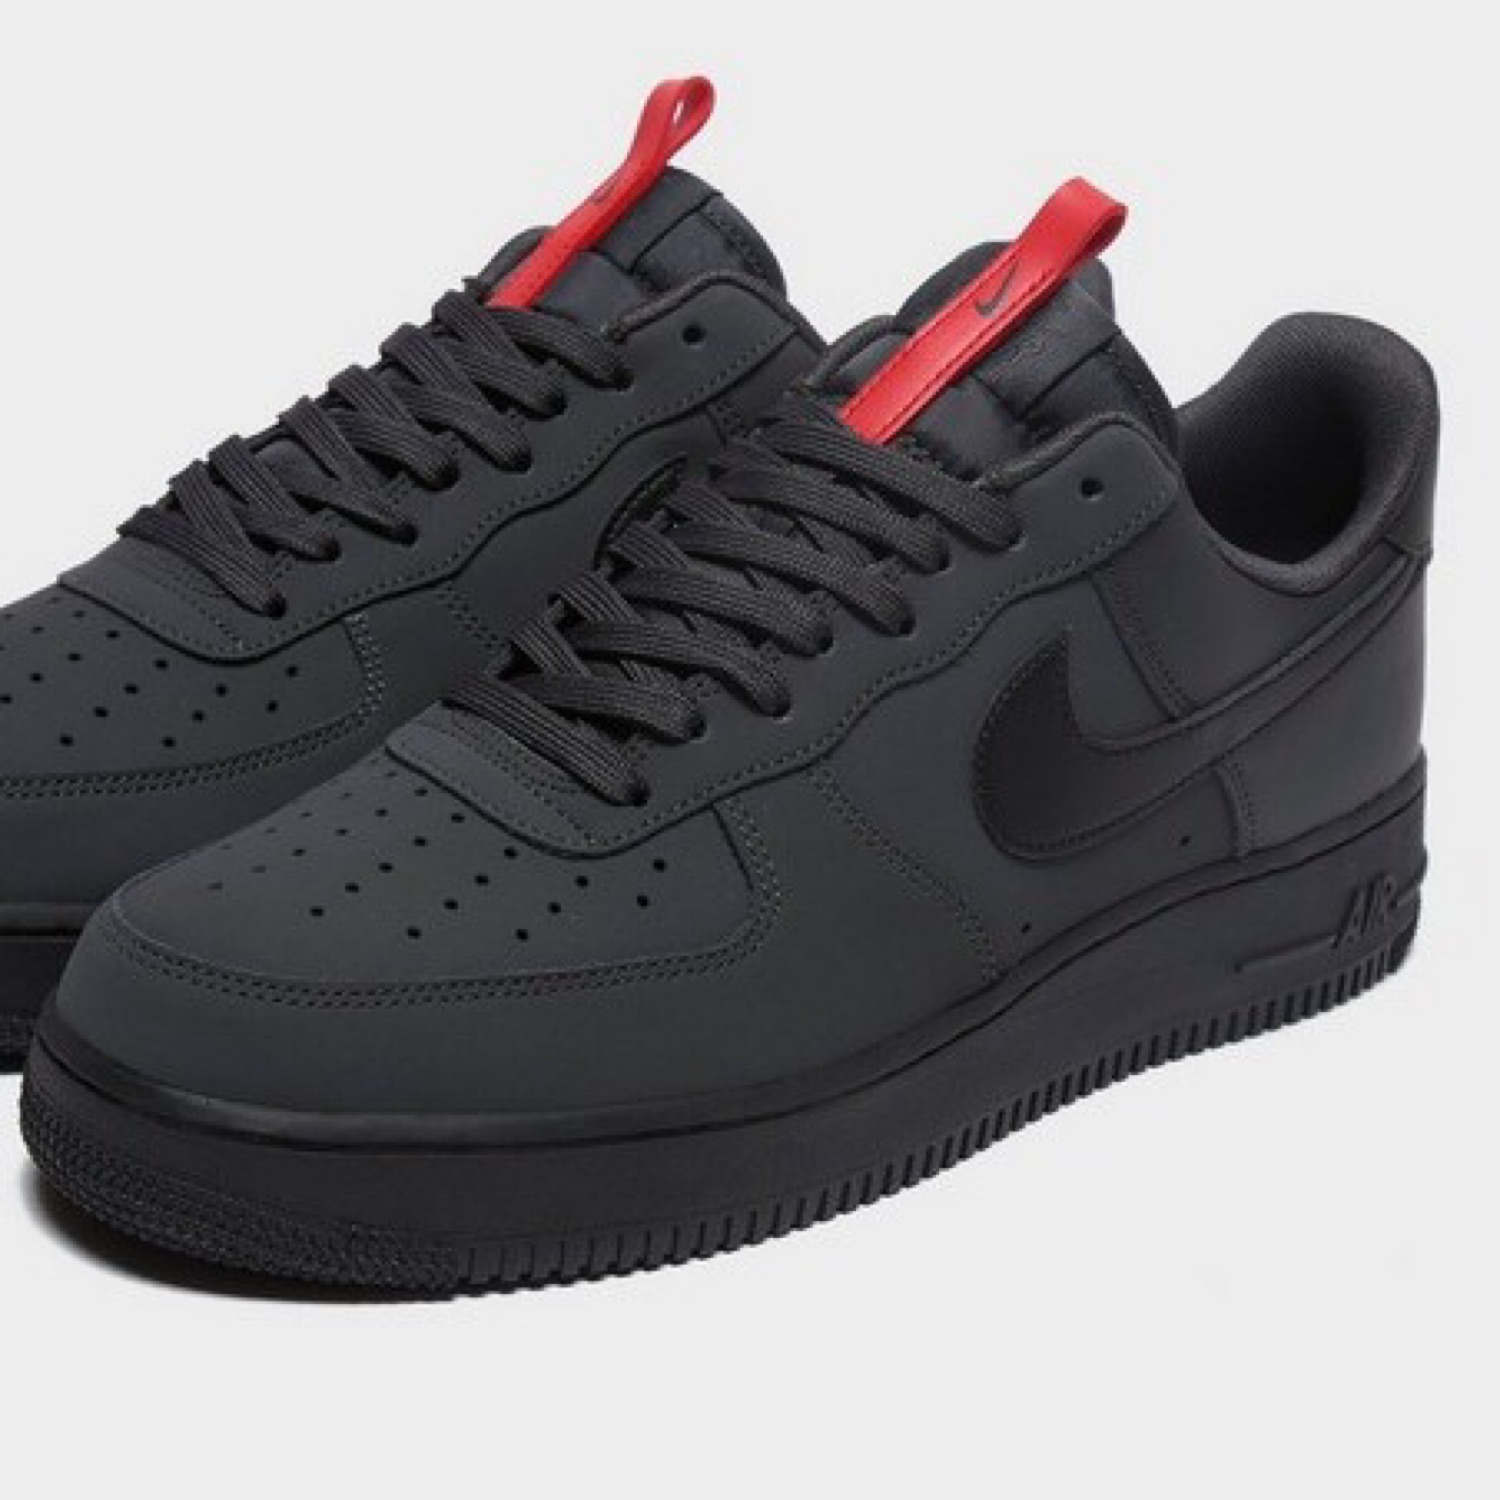 grey and red air force 1